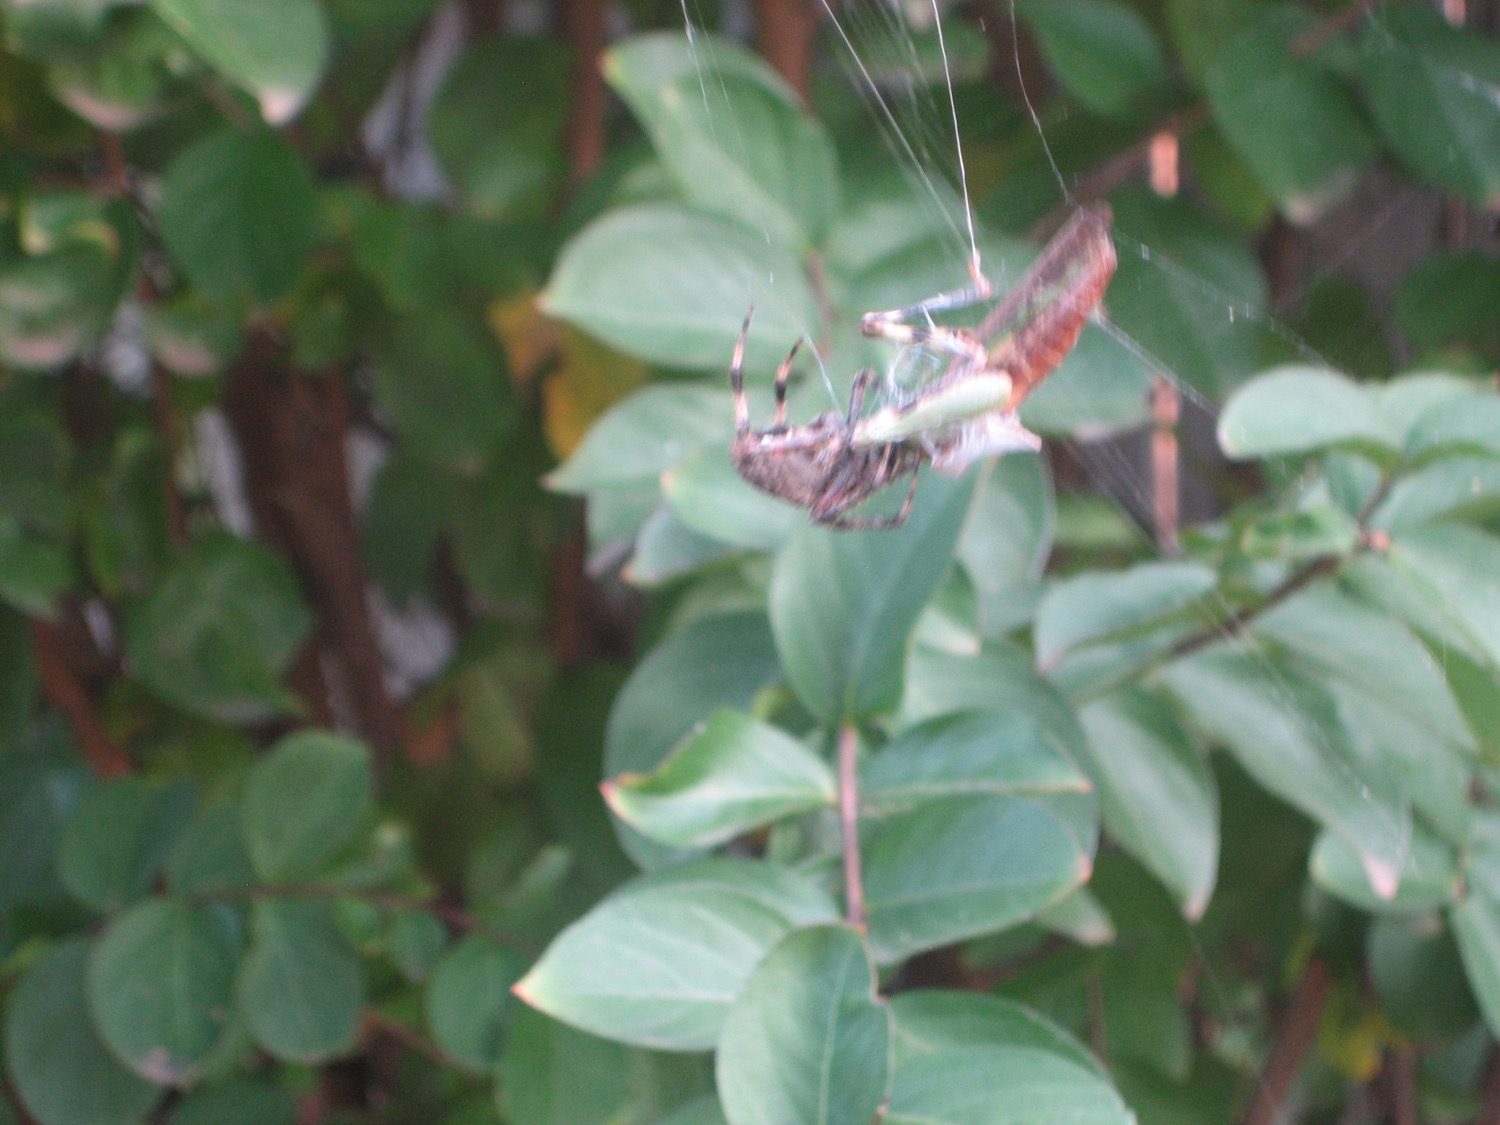 How to Get Kids Interested in Photography - spider eating grasshopper